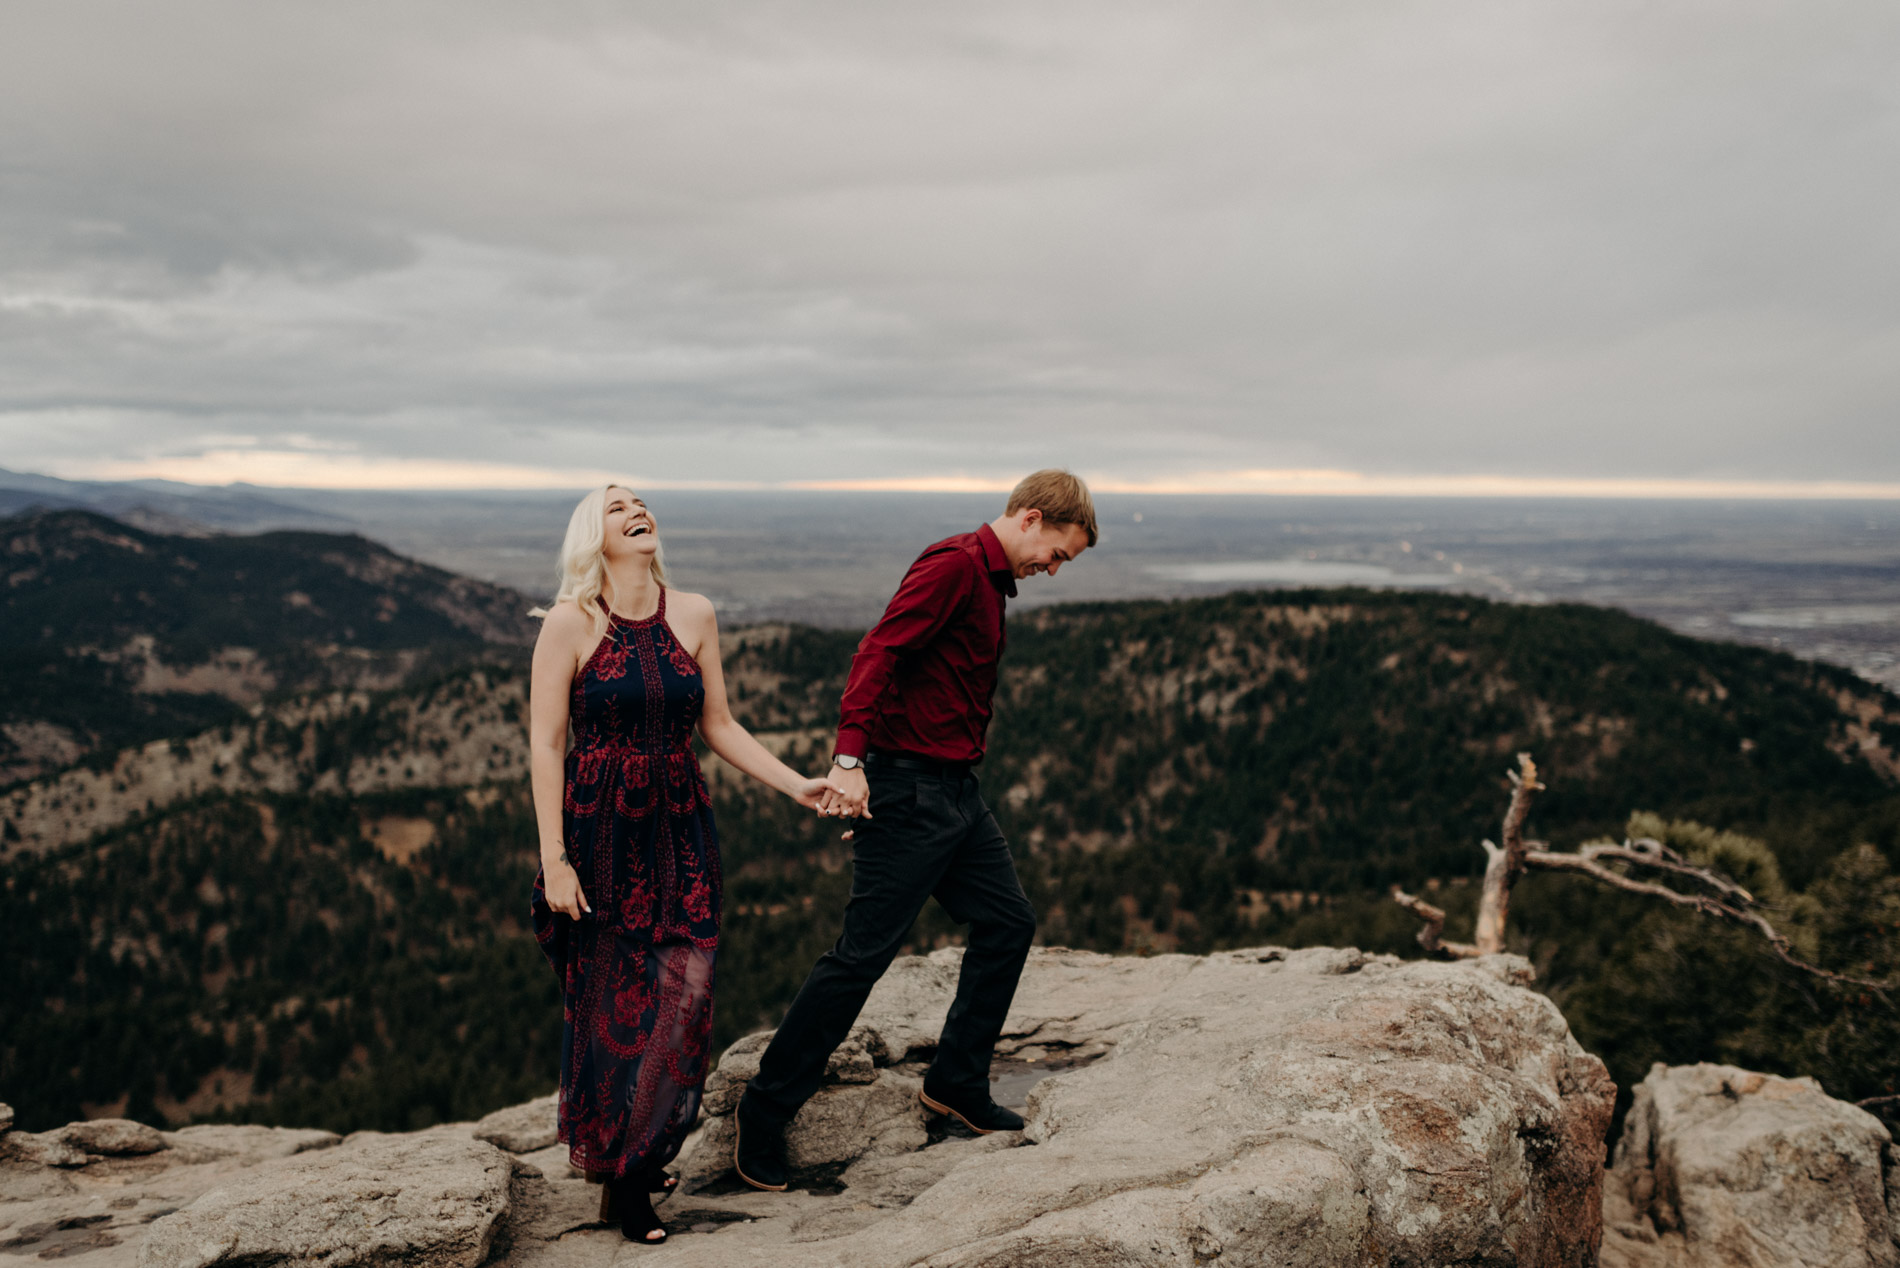 lost-gulch-overlook-engagement-lost-gulch-overlook-photos-lost-gulch-overlook-sunrise-engagement-boulder-engagement-wedding-photographer